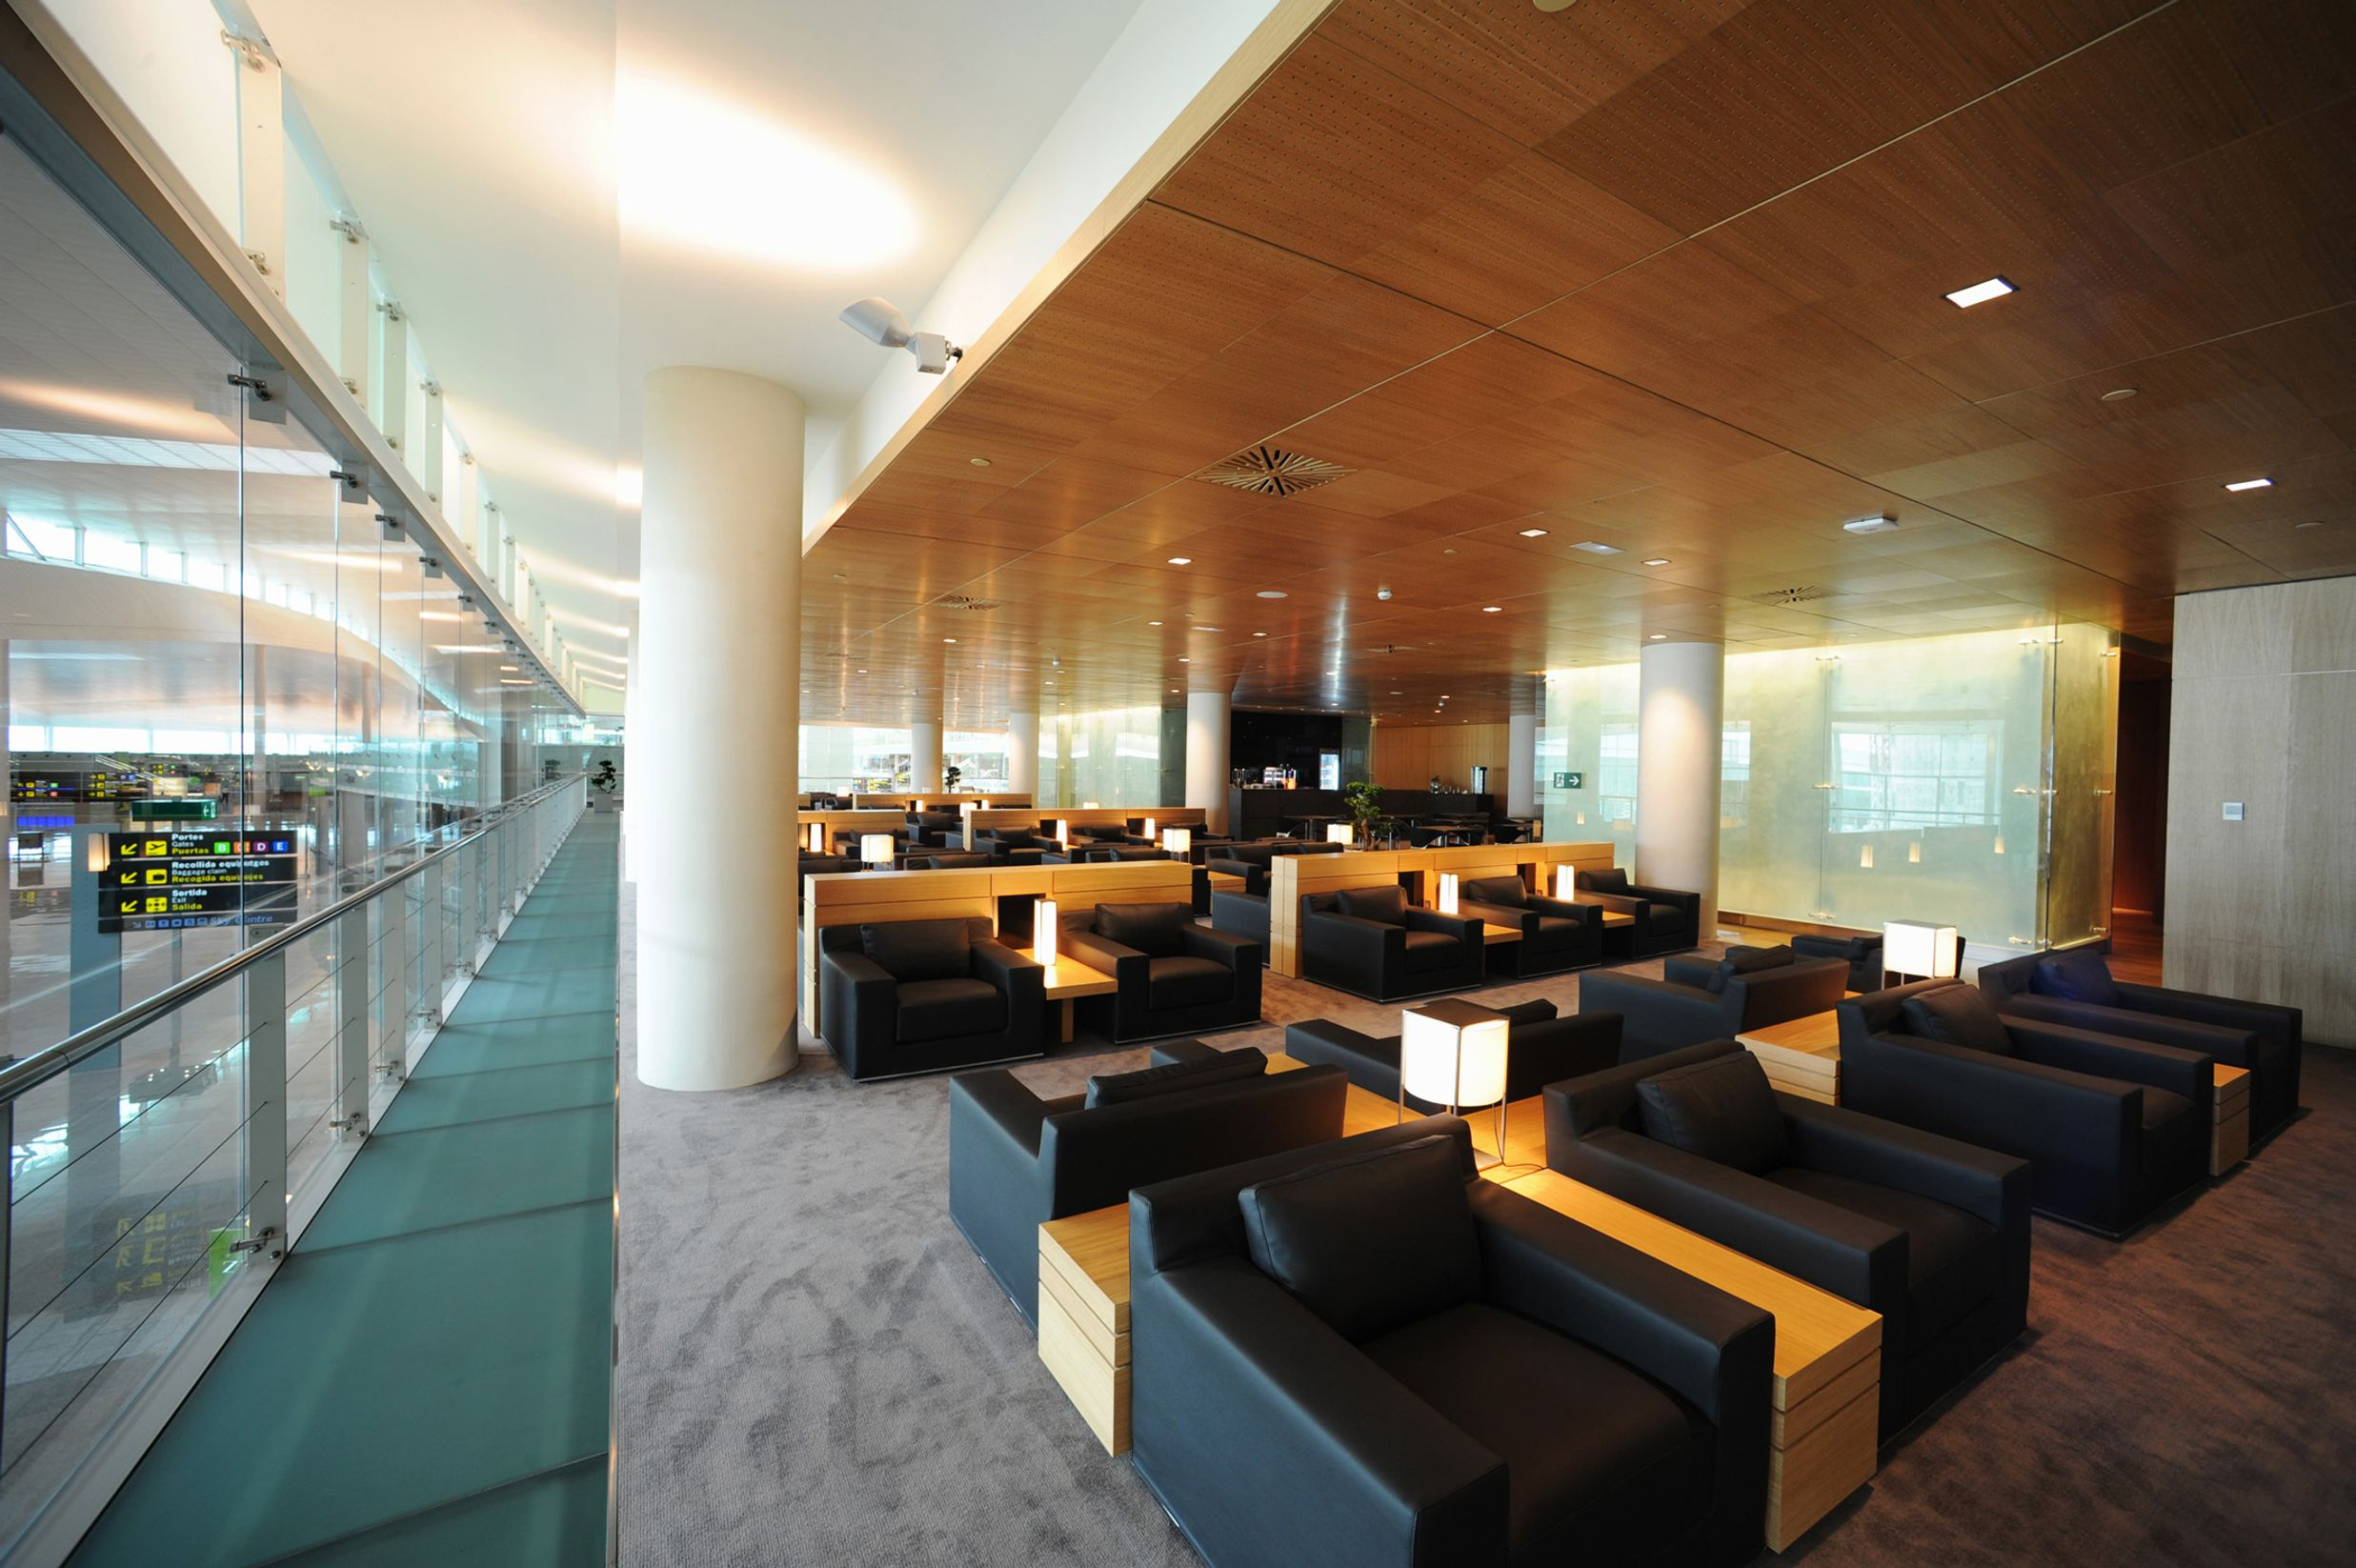 Pau Casals VIP lounge at Barcelona Airport - turn your economy fare into a first-class experience